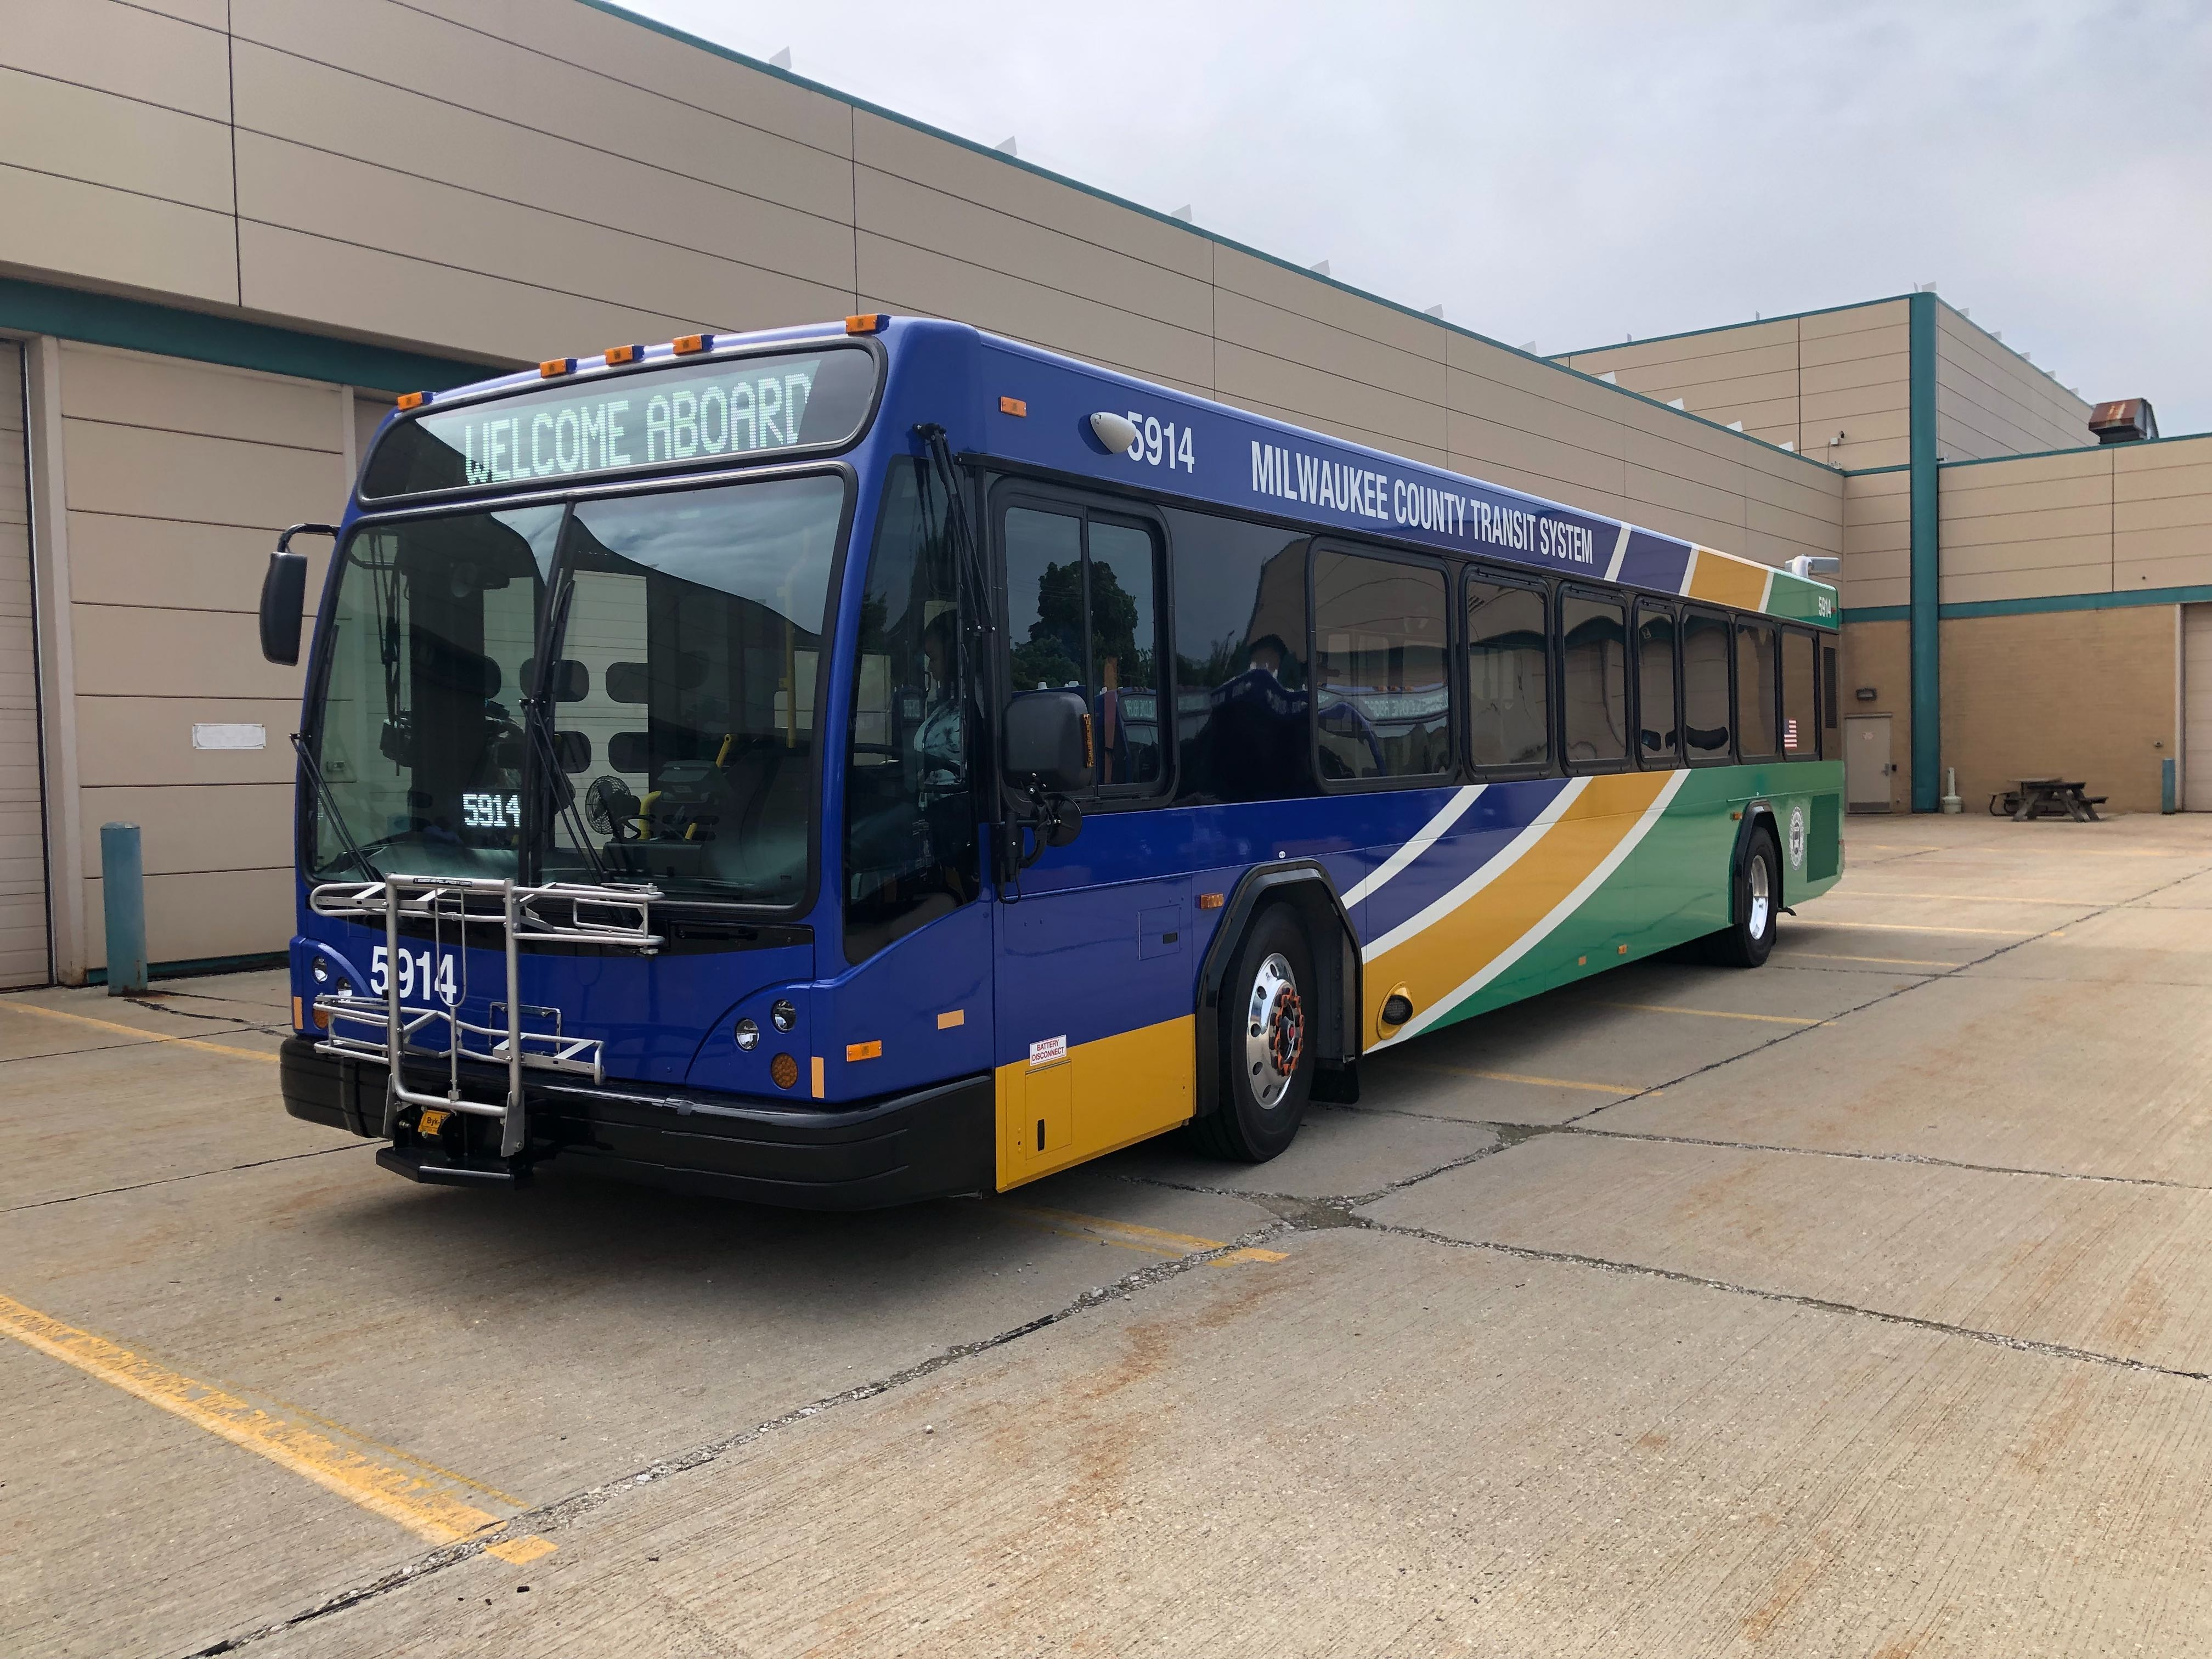 A Milwaukee County Transit System (MCTS) bus from Gillig. Photo by Jeramey Jannene.